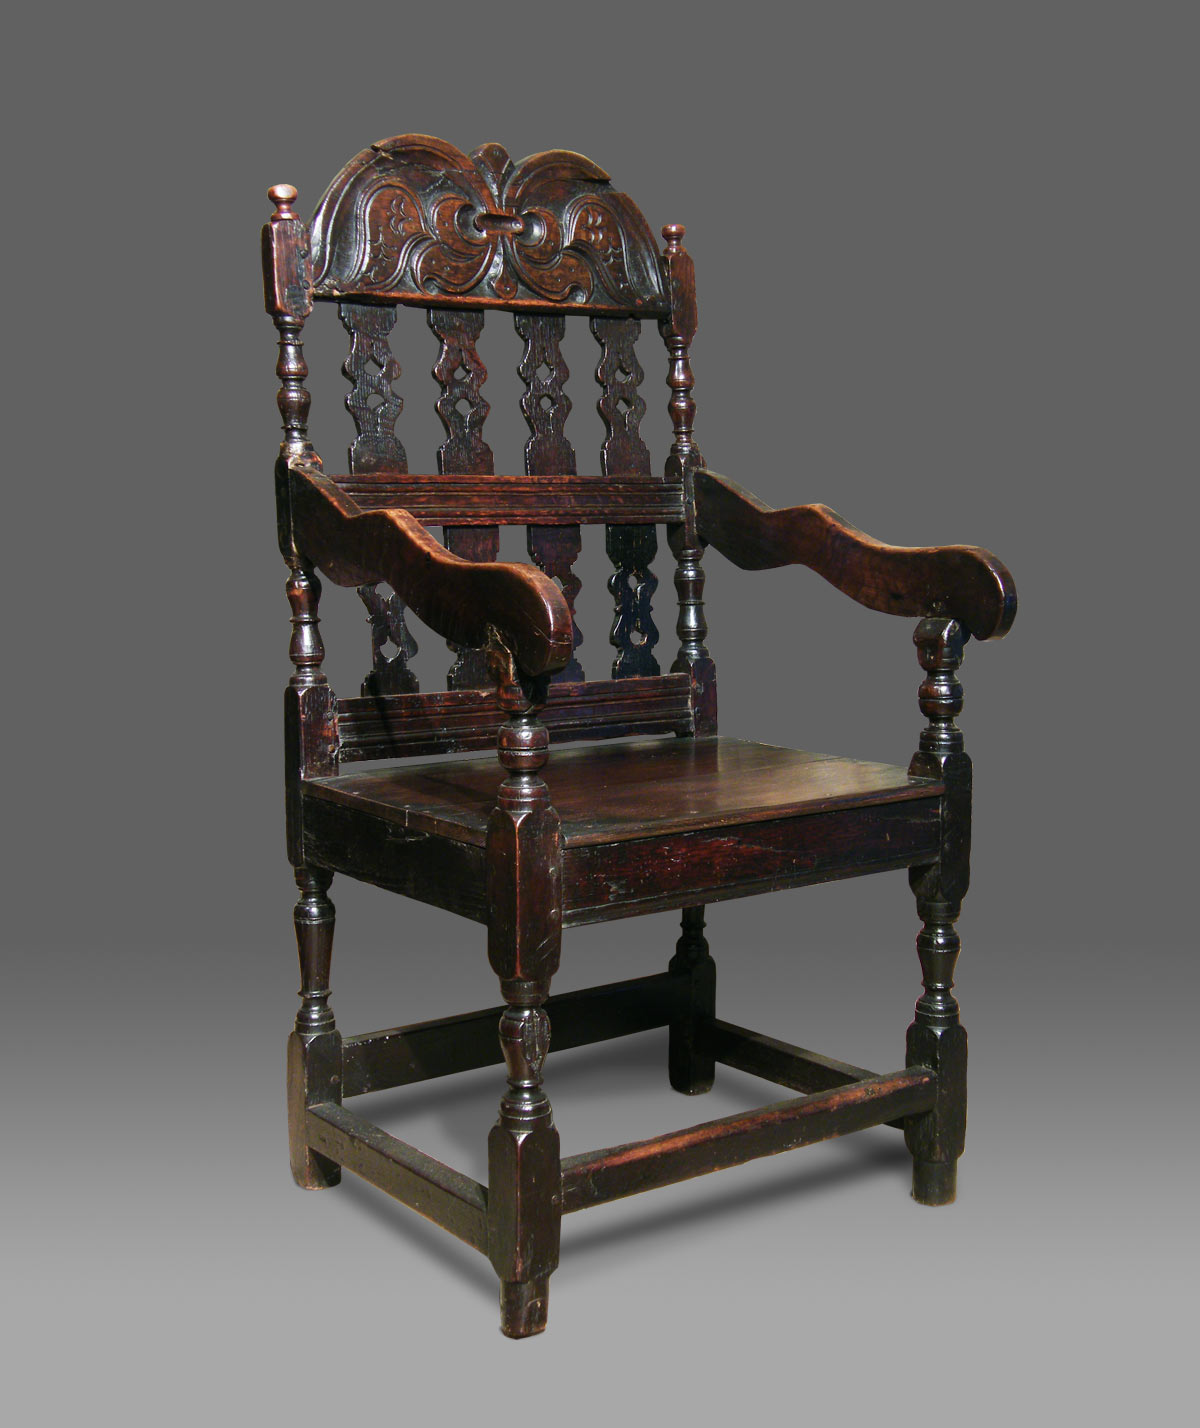 unusual armchair stapleford ergonomic executive chair antique of design the back with shaped